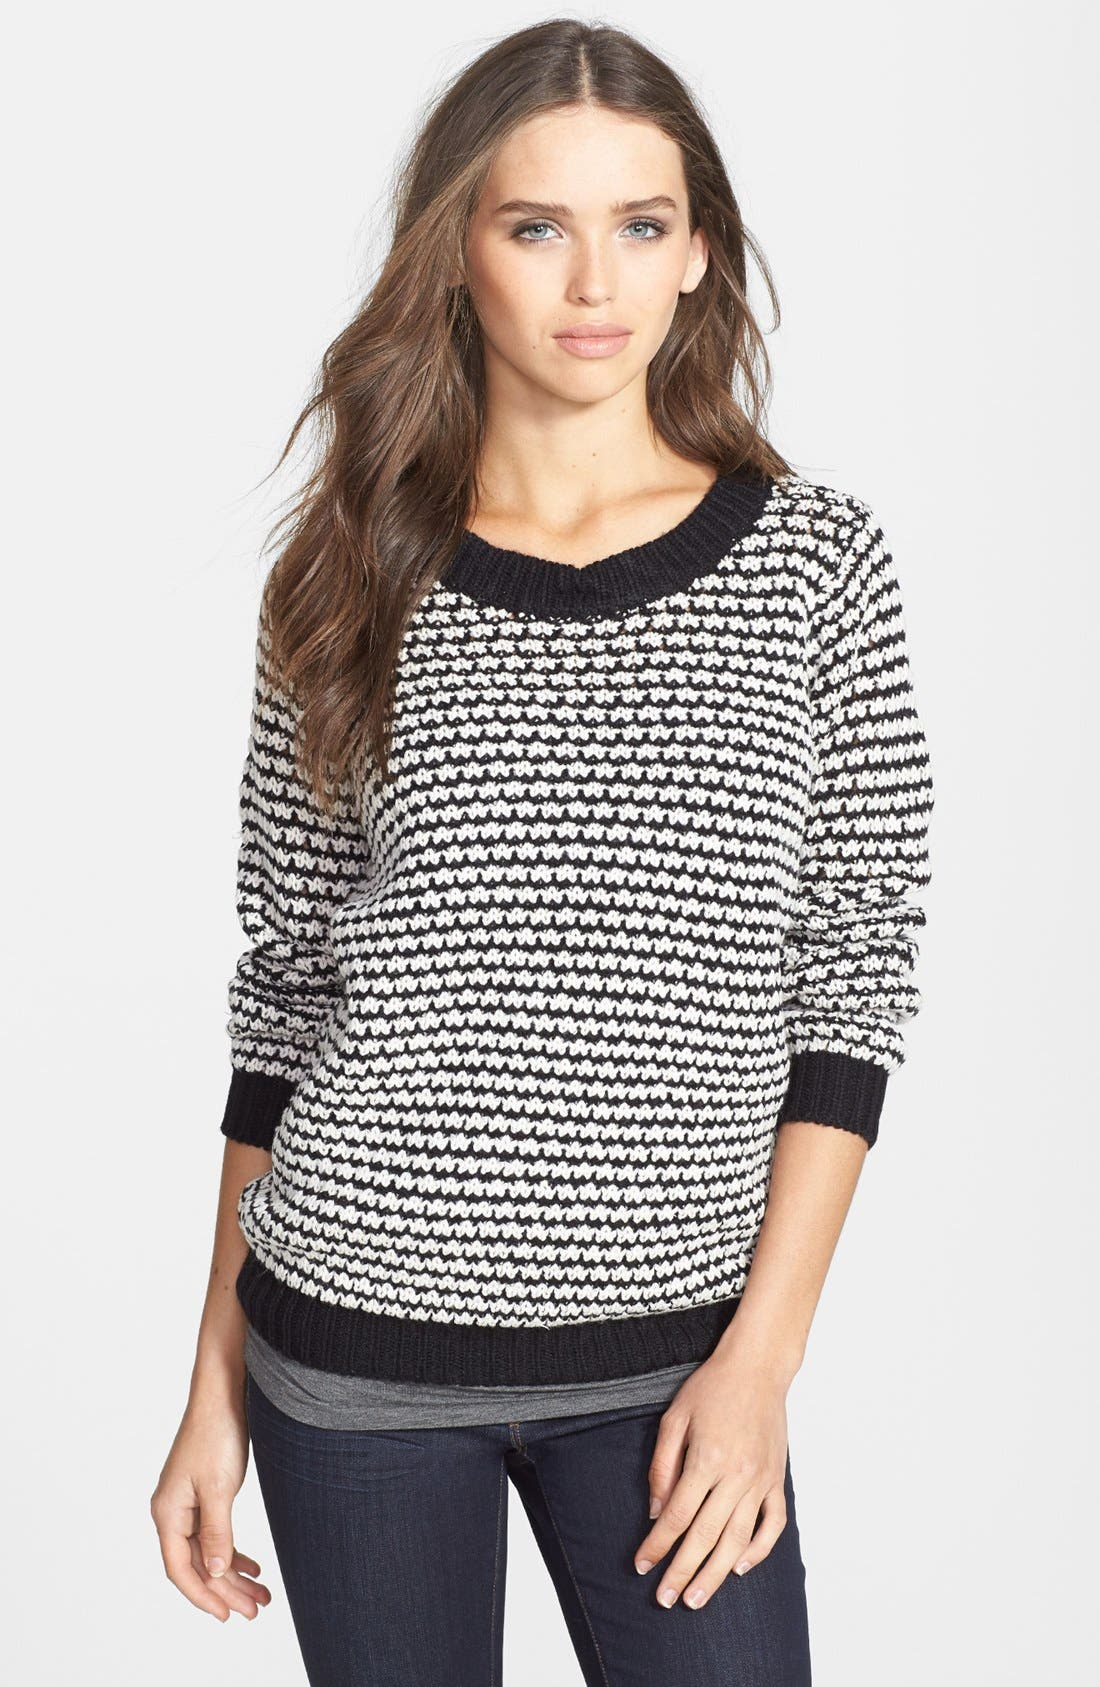 Alternate Image 1 Selected - RD Style Textured Crewneck Sweater